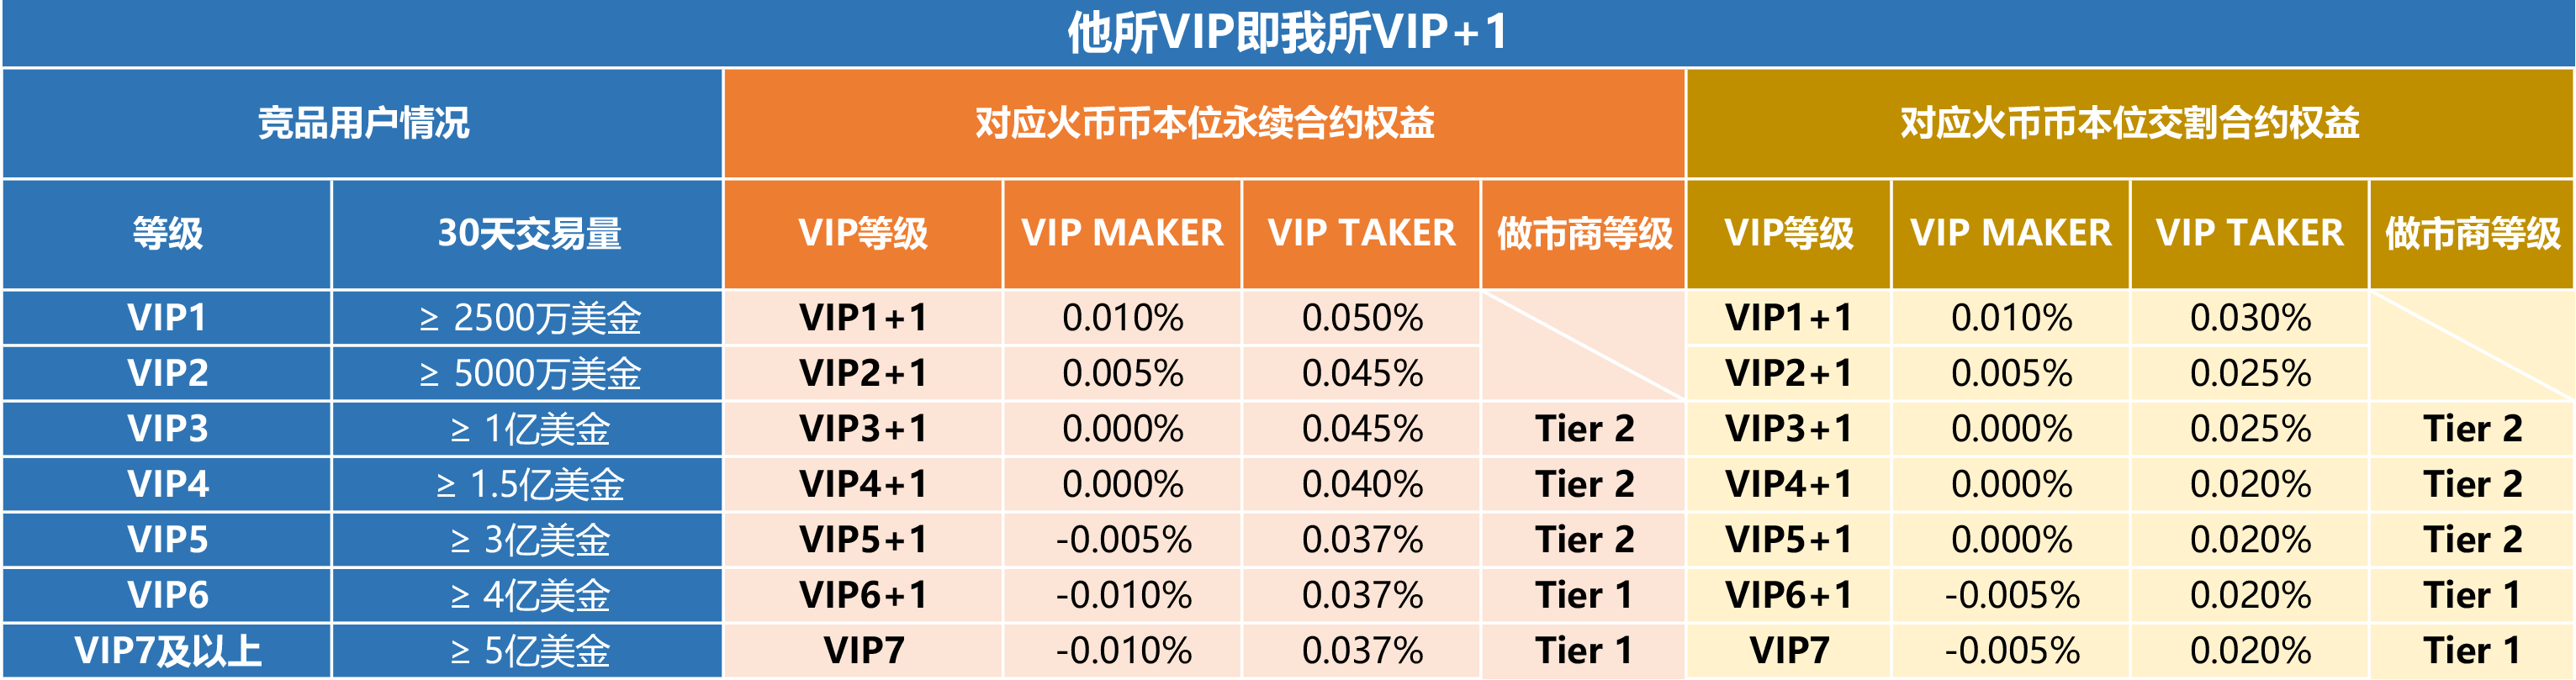 VIP_1___.png